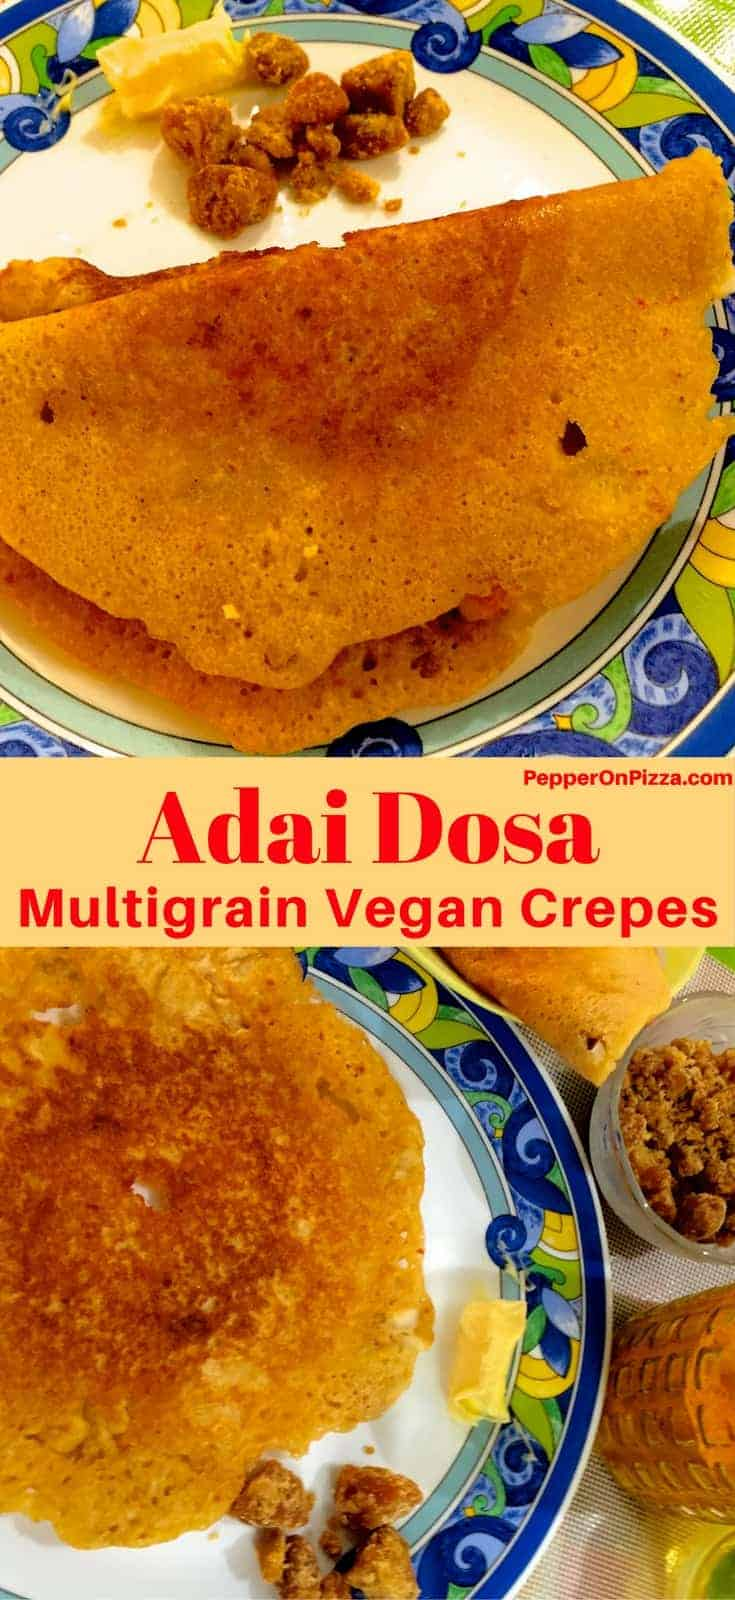 Adai - a Multigrain Dosa - Tasty and nutritious crepes made from coarsely ground batter of rice and mixed lentils. Delicious with avial